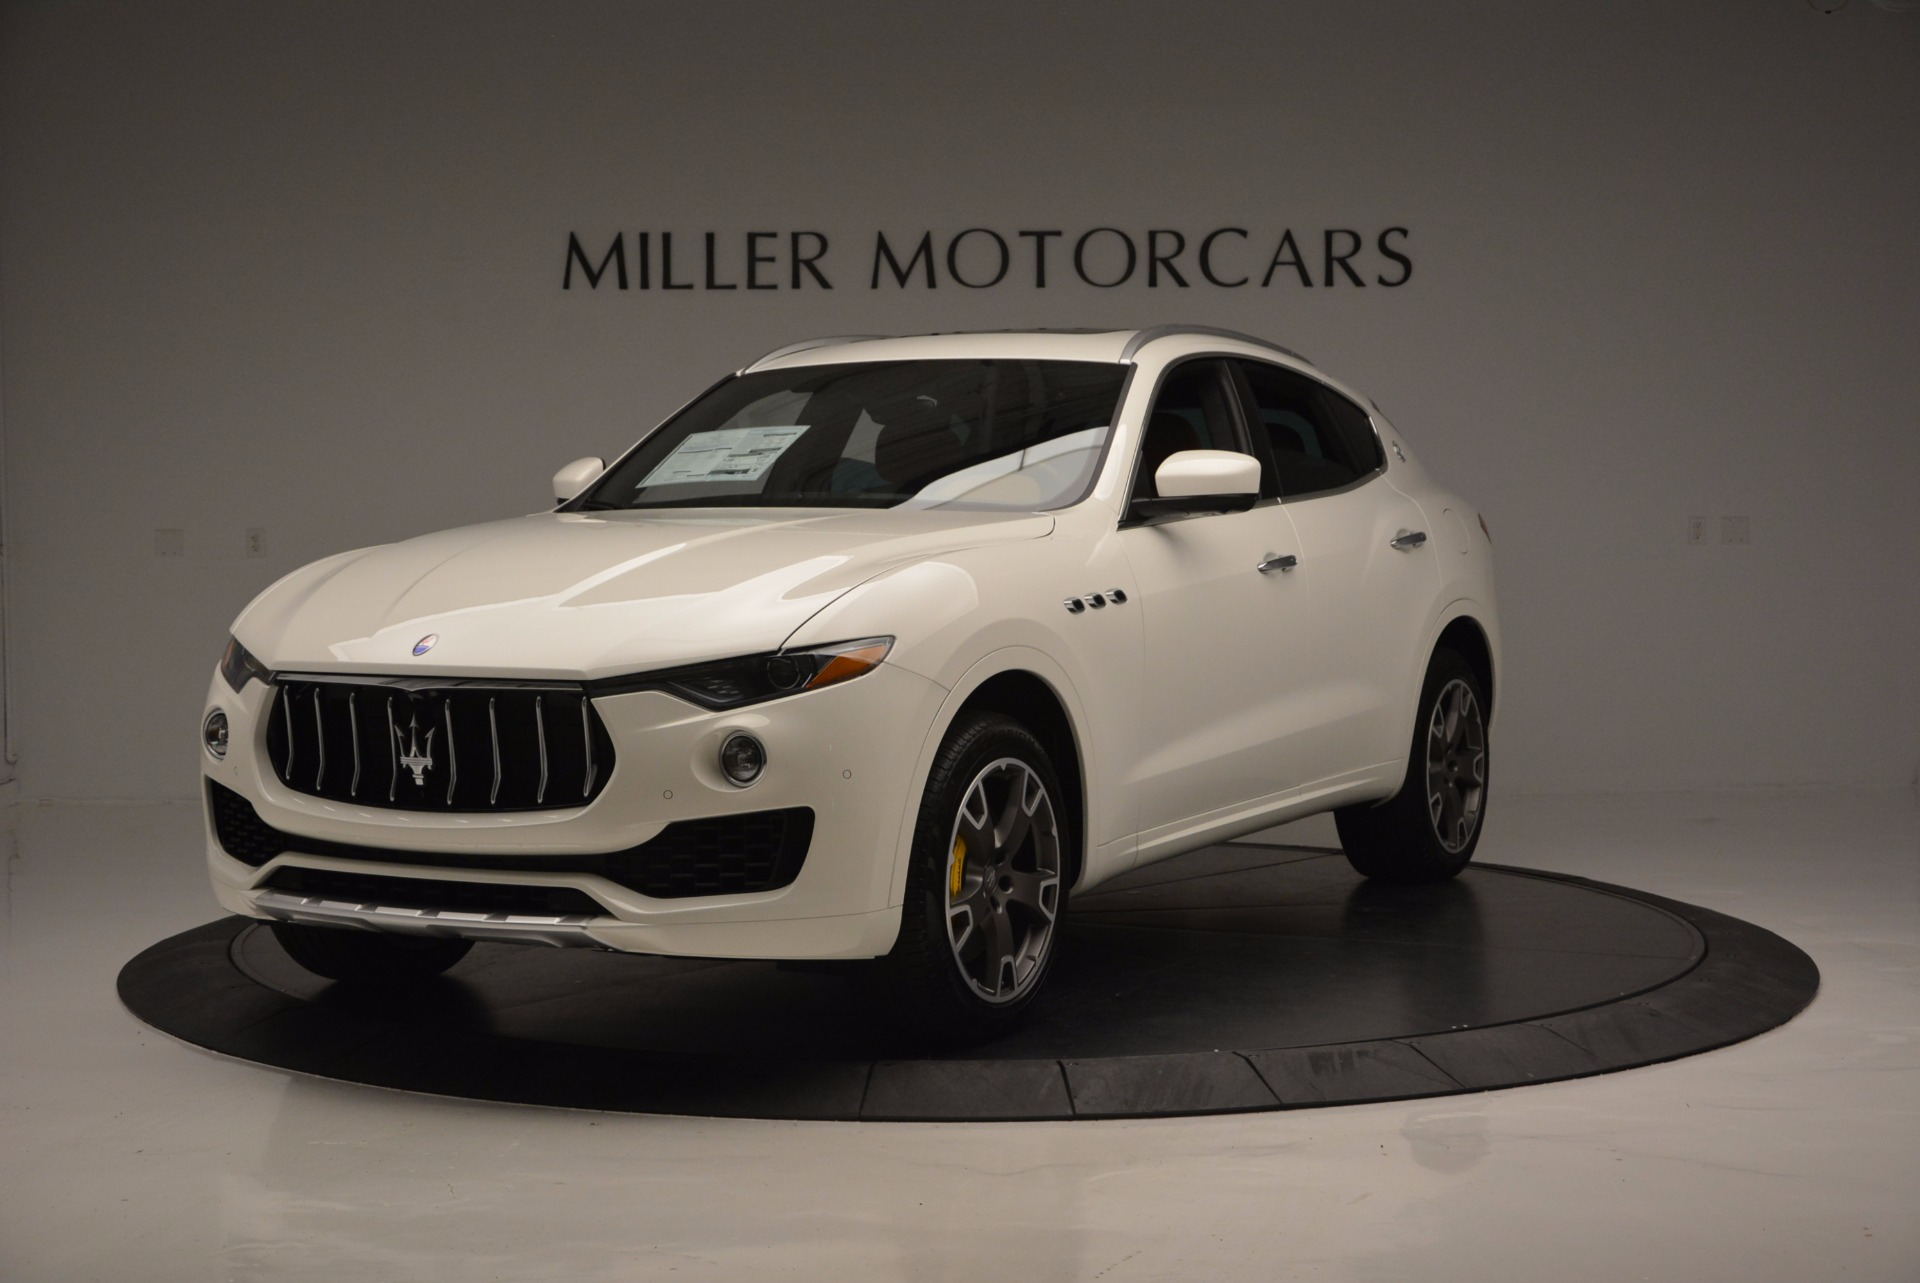 New 2017 Maserati Levante S Q4 for sale Sold at Pagani of Greenwich in Greenwich CT 06830 1